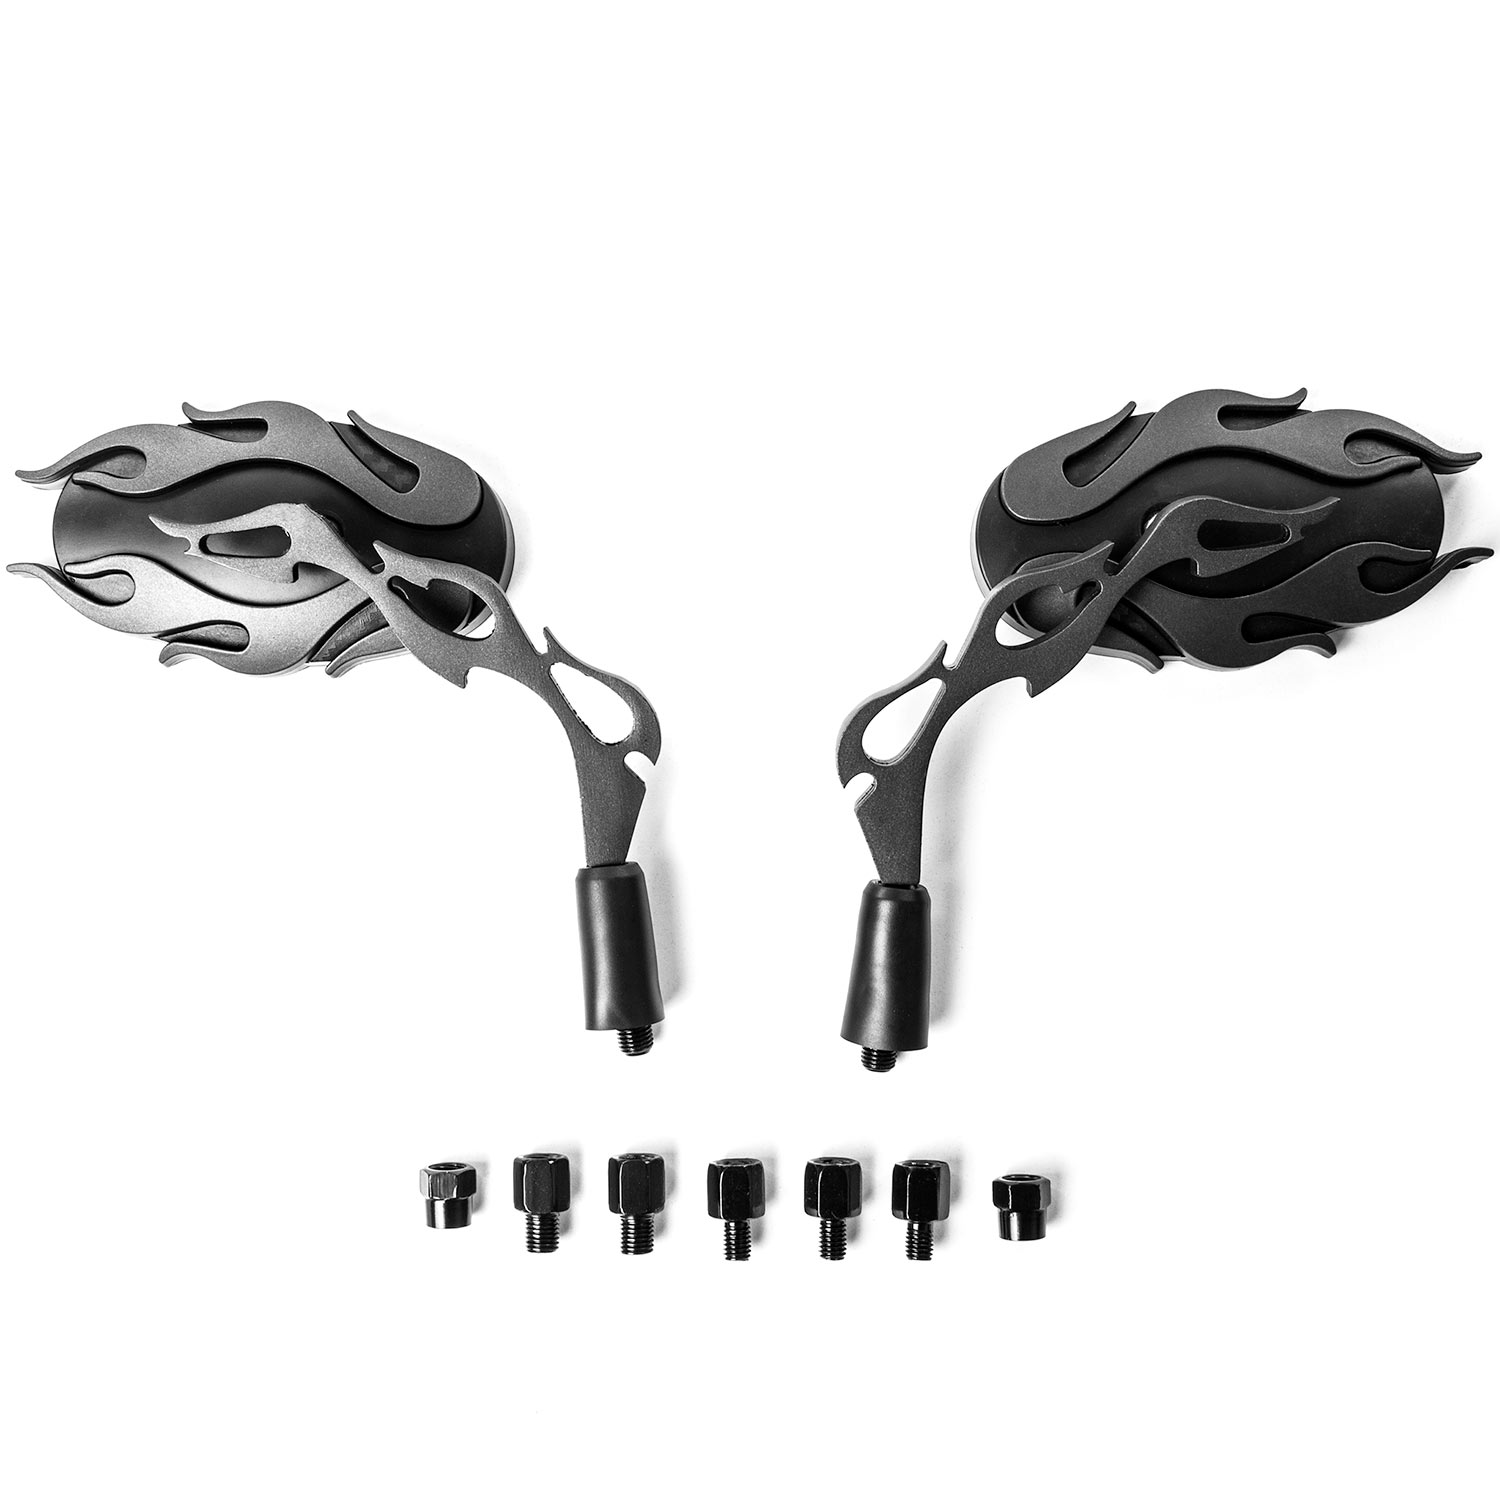 Flame Rear View Mirrors Black Pair w/Adapters For Harley Davidson Softail Fat Boy FLSTF - image 2 of 3